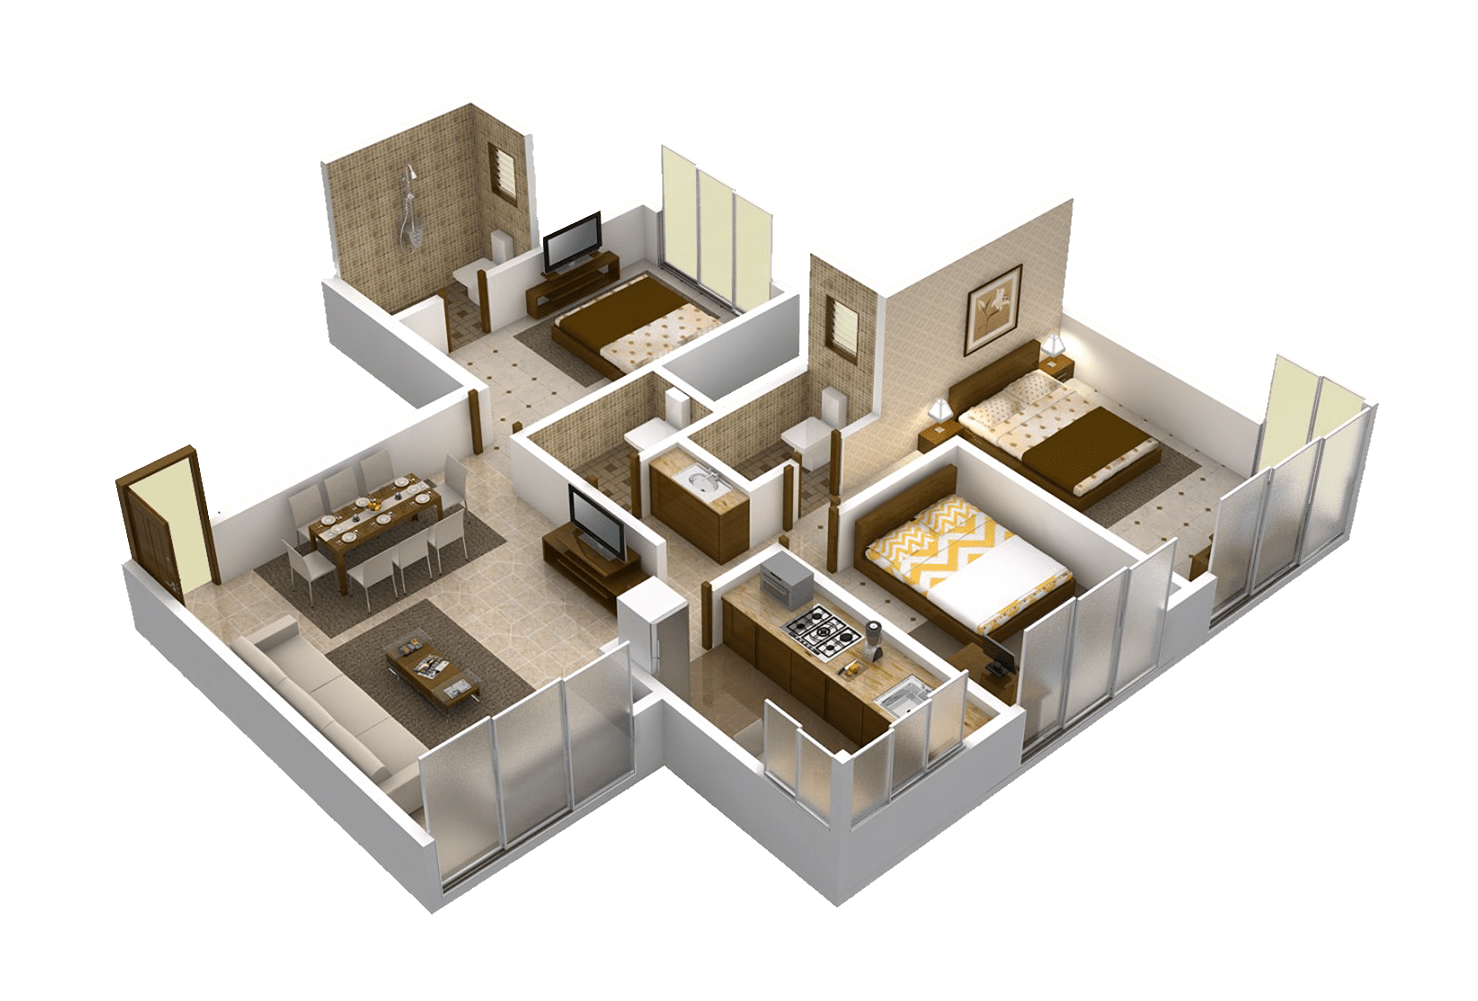 Matoshree Nisarg Floor Plans A wing 935 Sq.Ft. – New Residential Projects In Mulund